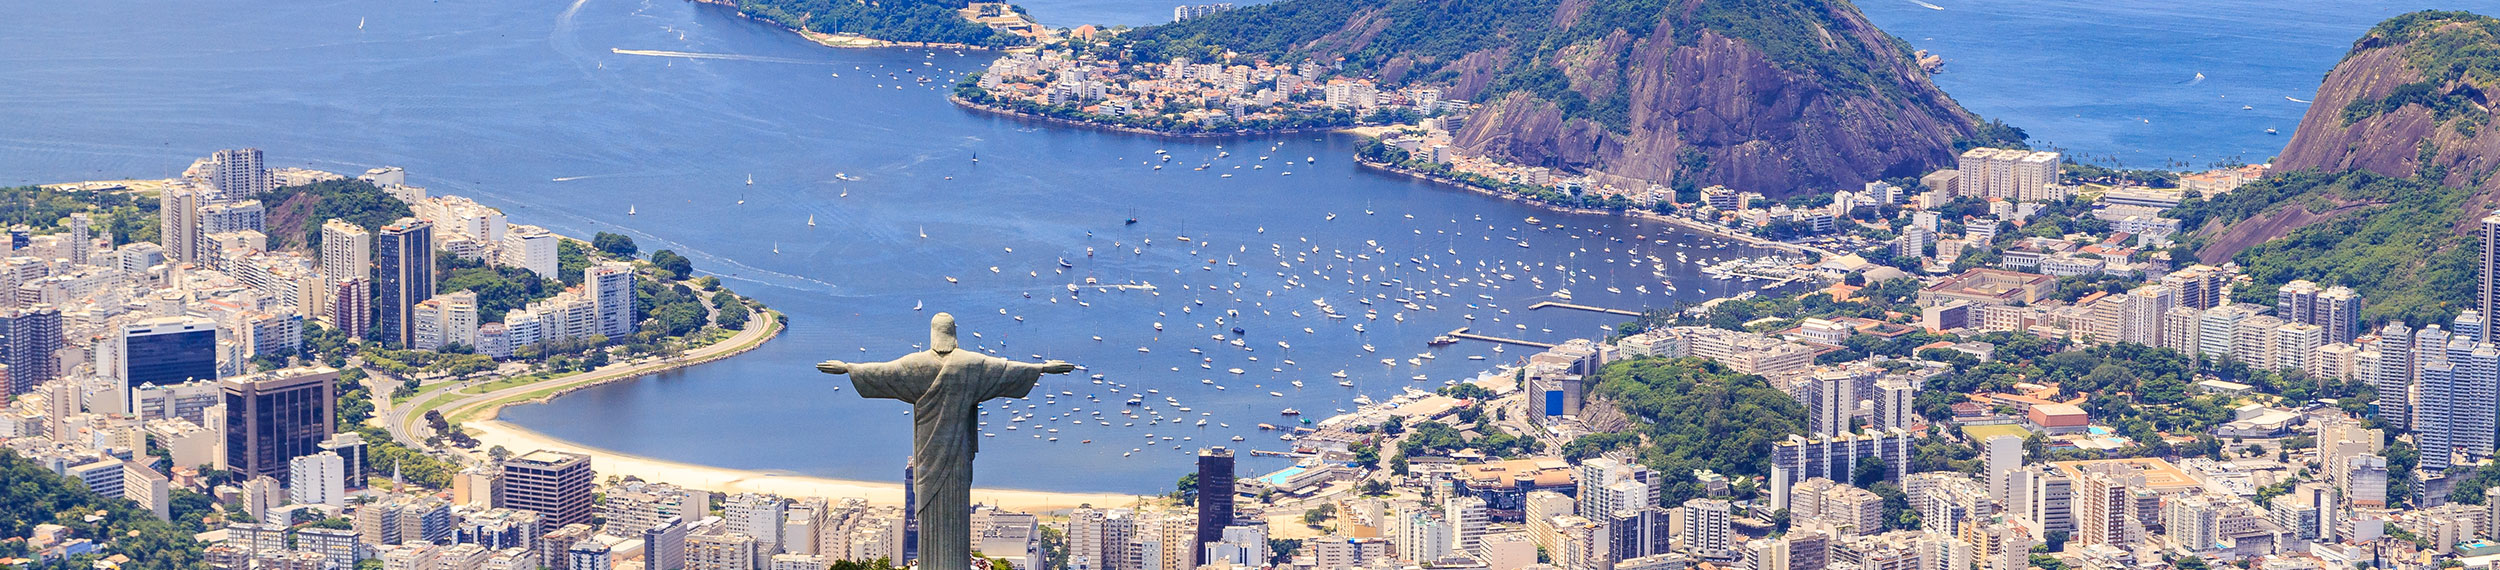 Aerial view of Christ The Redeemer Monument on Corcovado Mountain overlooking the water on a sunny day in Rio de Janeiro, Brazil.